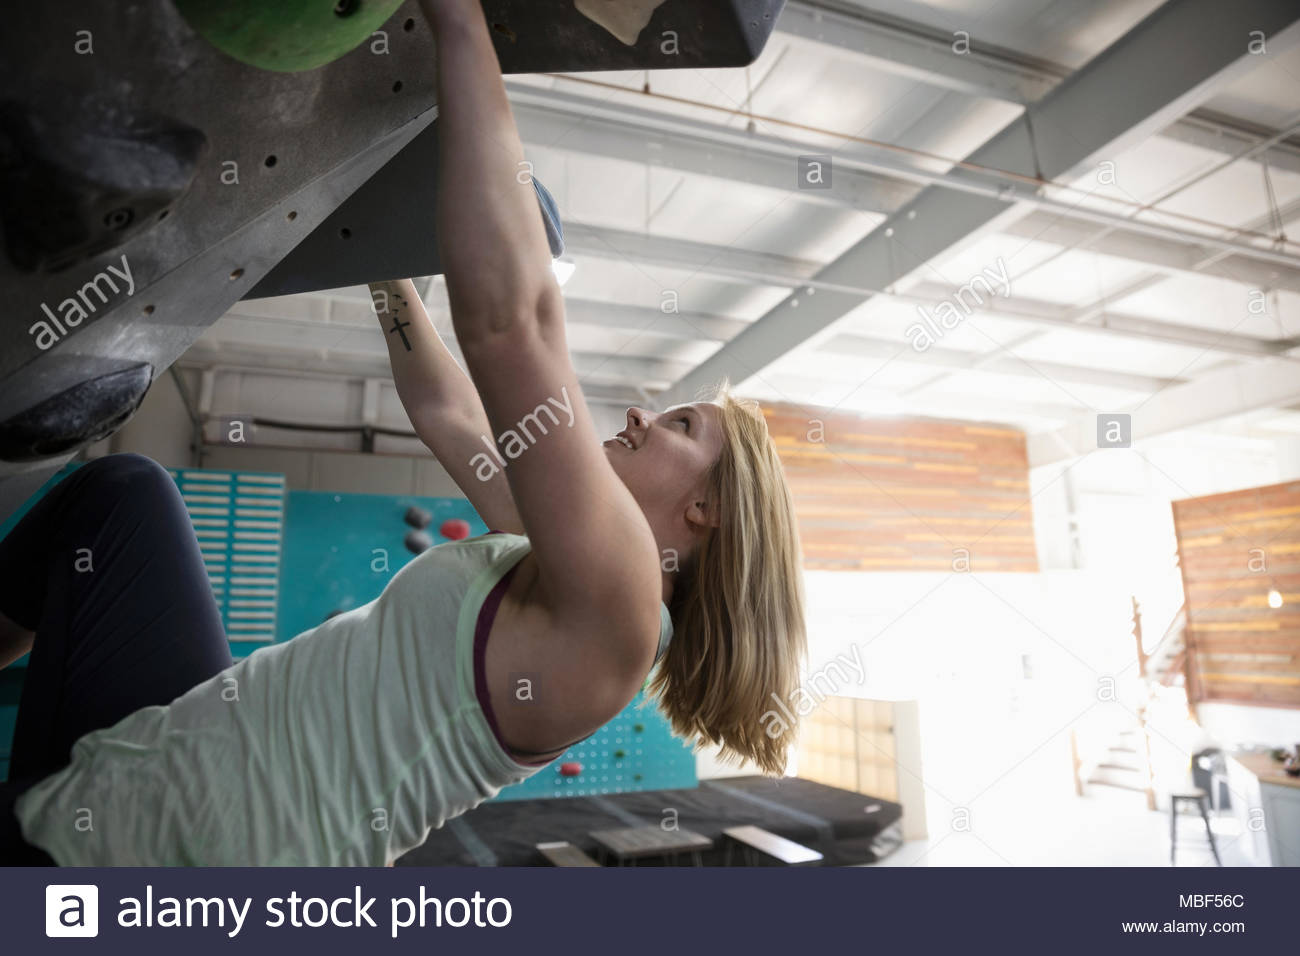 Determined female rock climber climbing wall at climbing gym - Stock Image